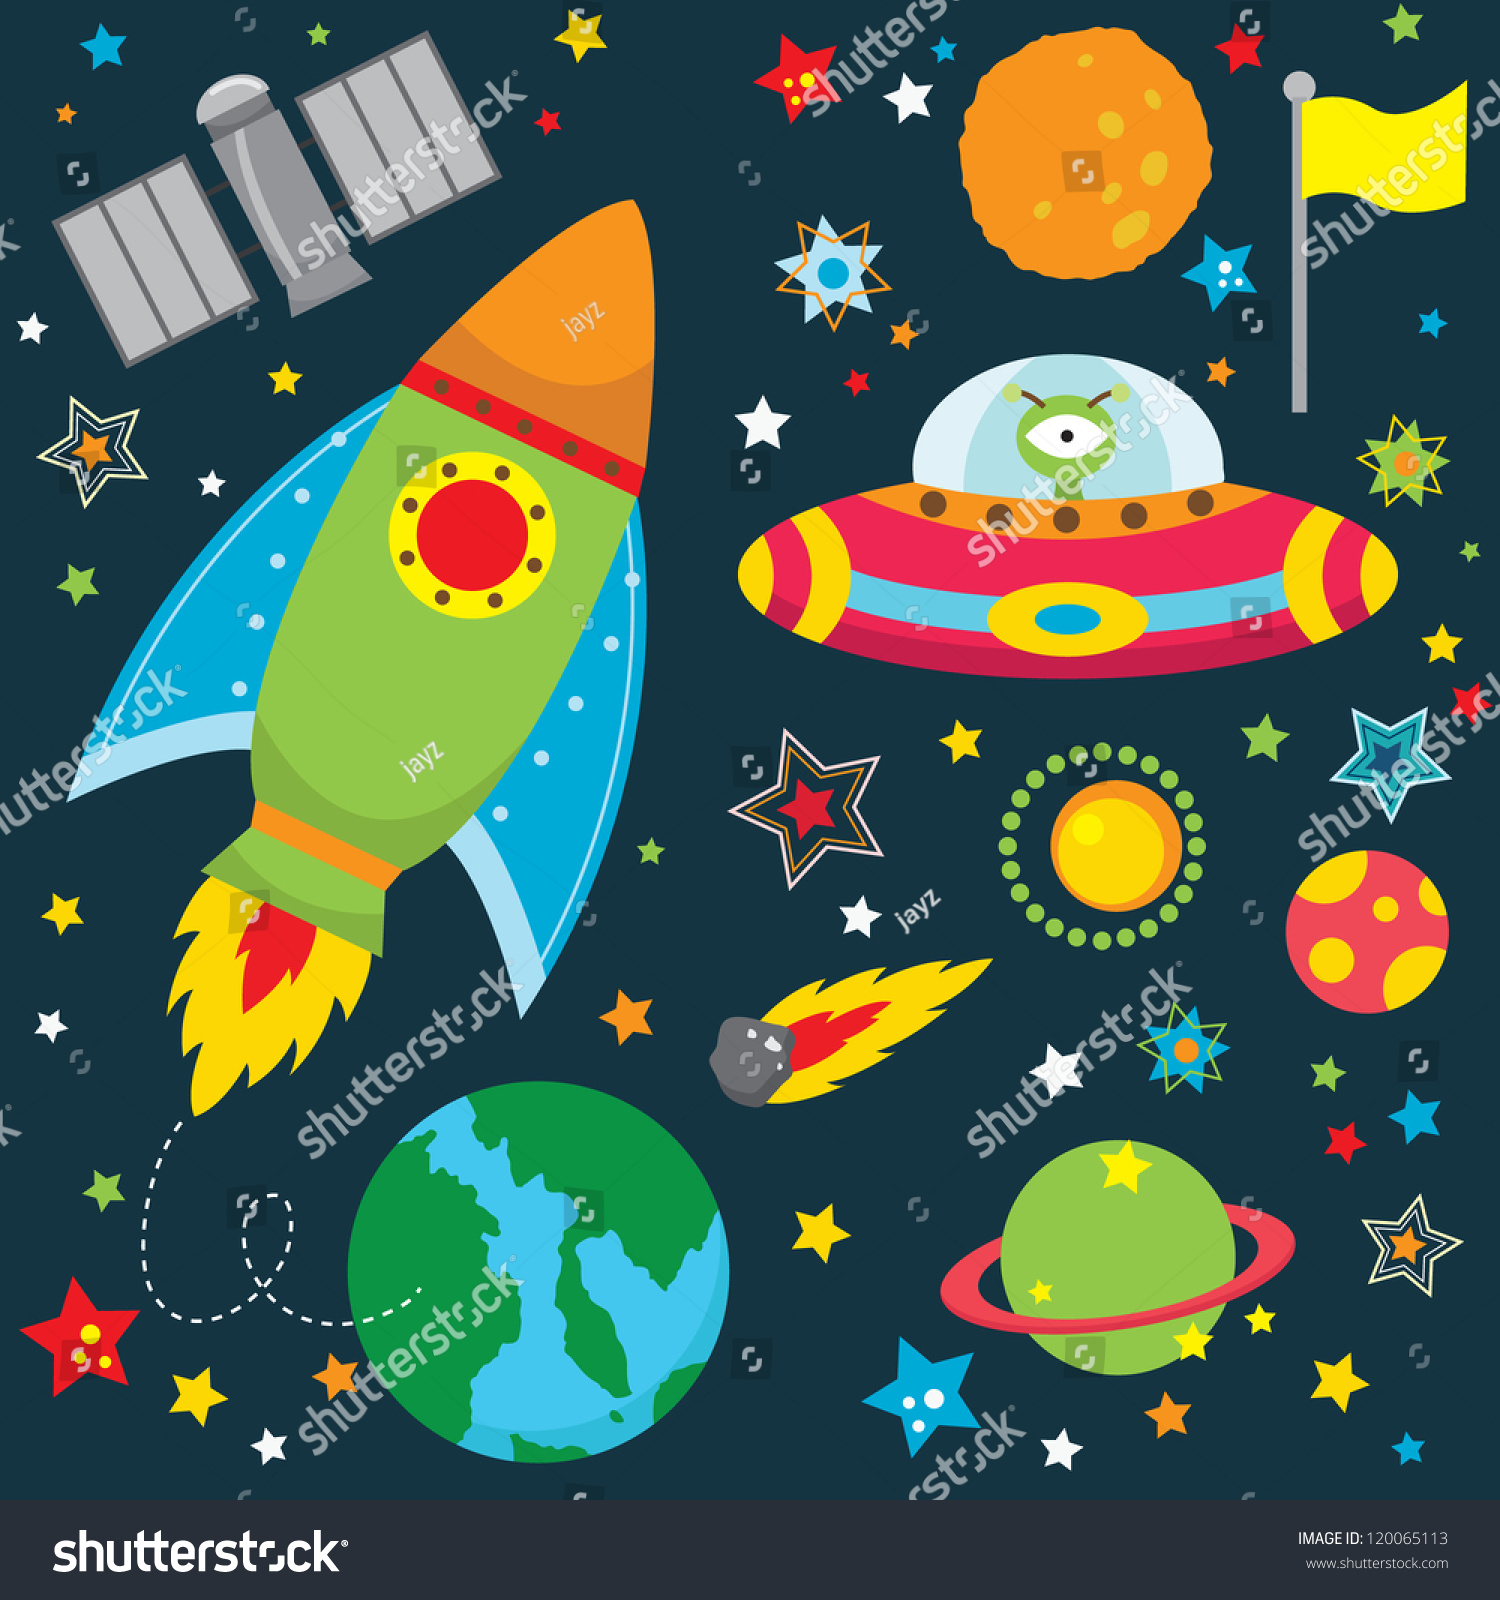 Outer space design elements stock vector illustration for Outer space stage design